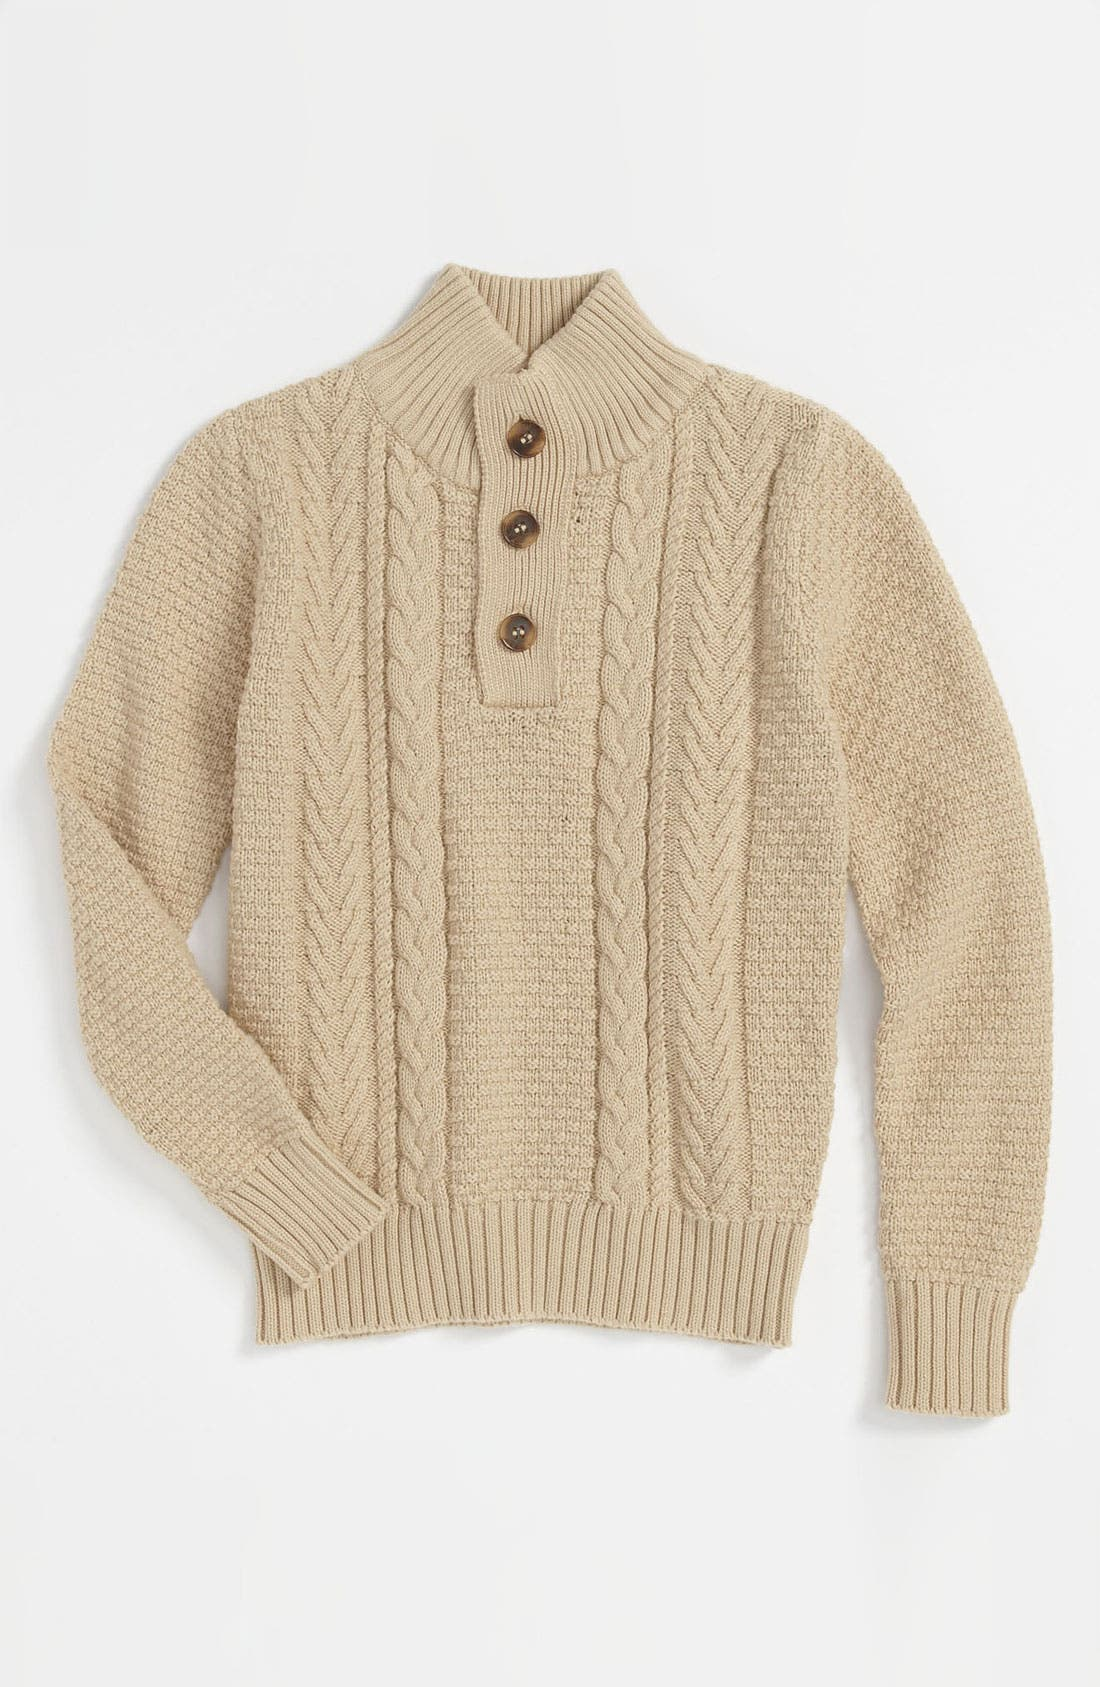 Main Image - Peek 'Nathan' Cable Knit Sweater (Toddler, Little Boys & Big Boys)